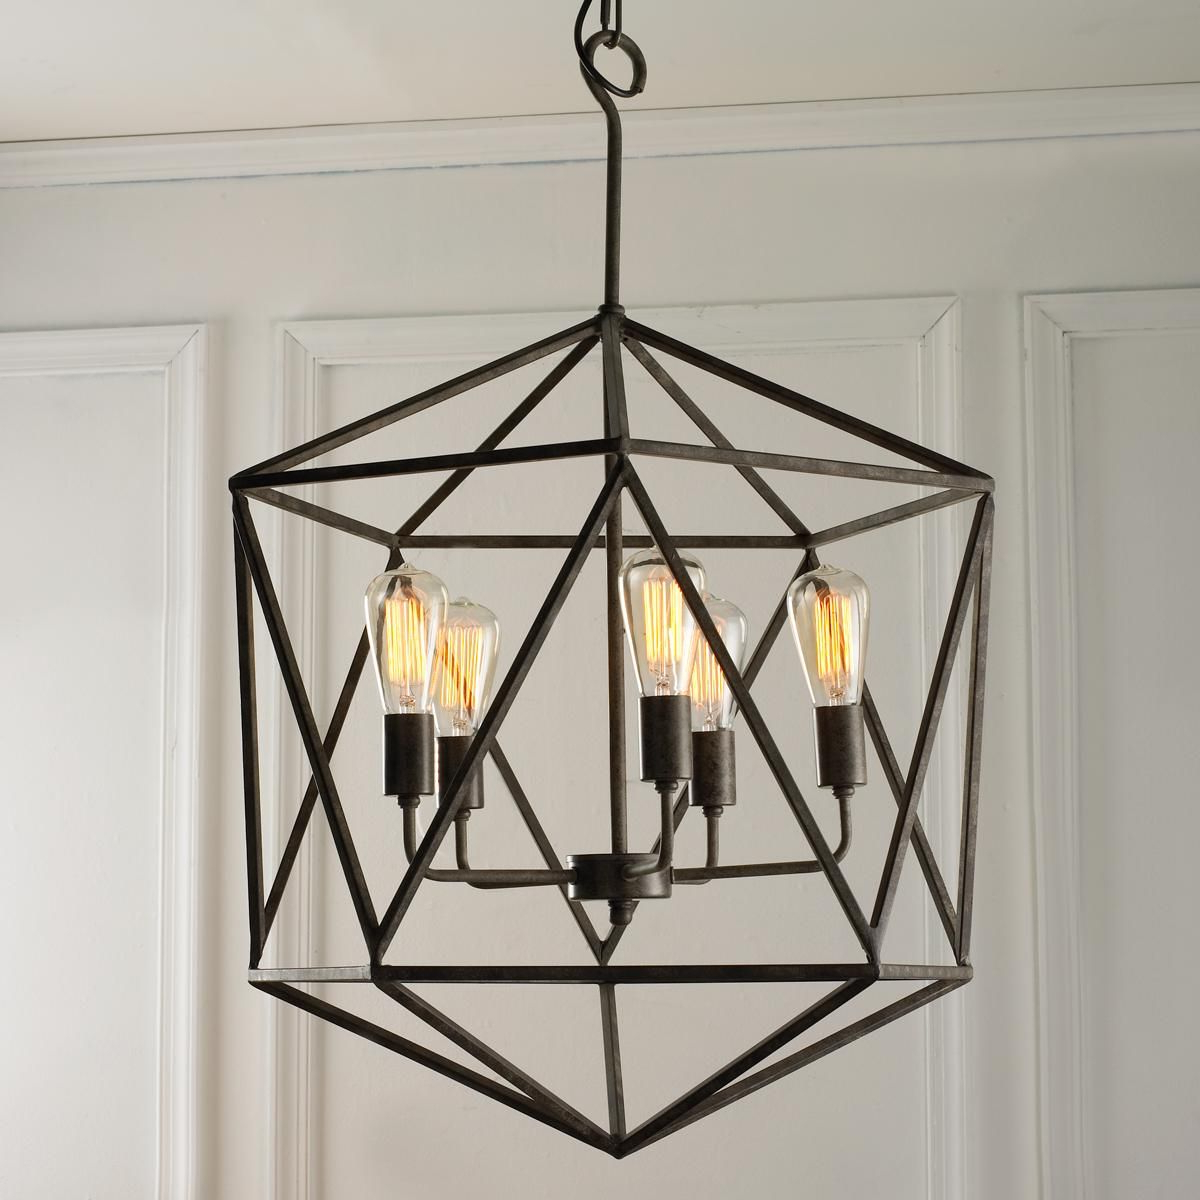 Craftsman Style Home Throughout Nisbet 6 Light Lantern Geometric Pendants (View 1 of 25)